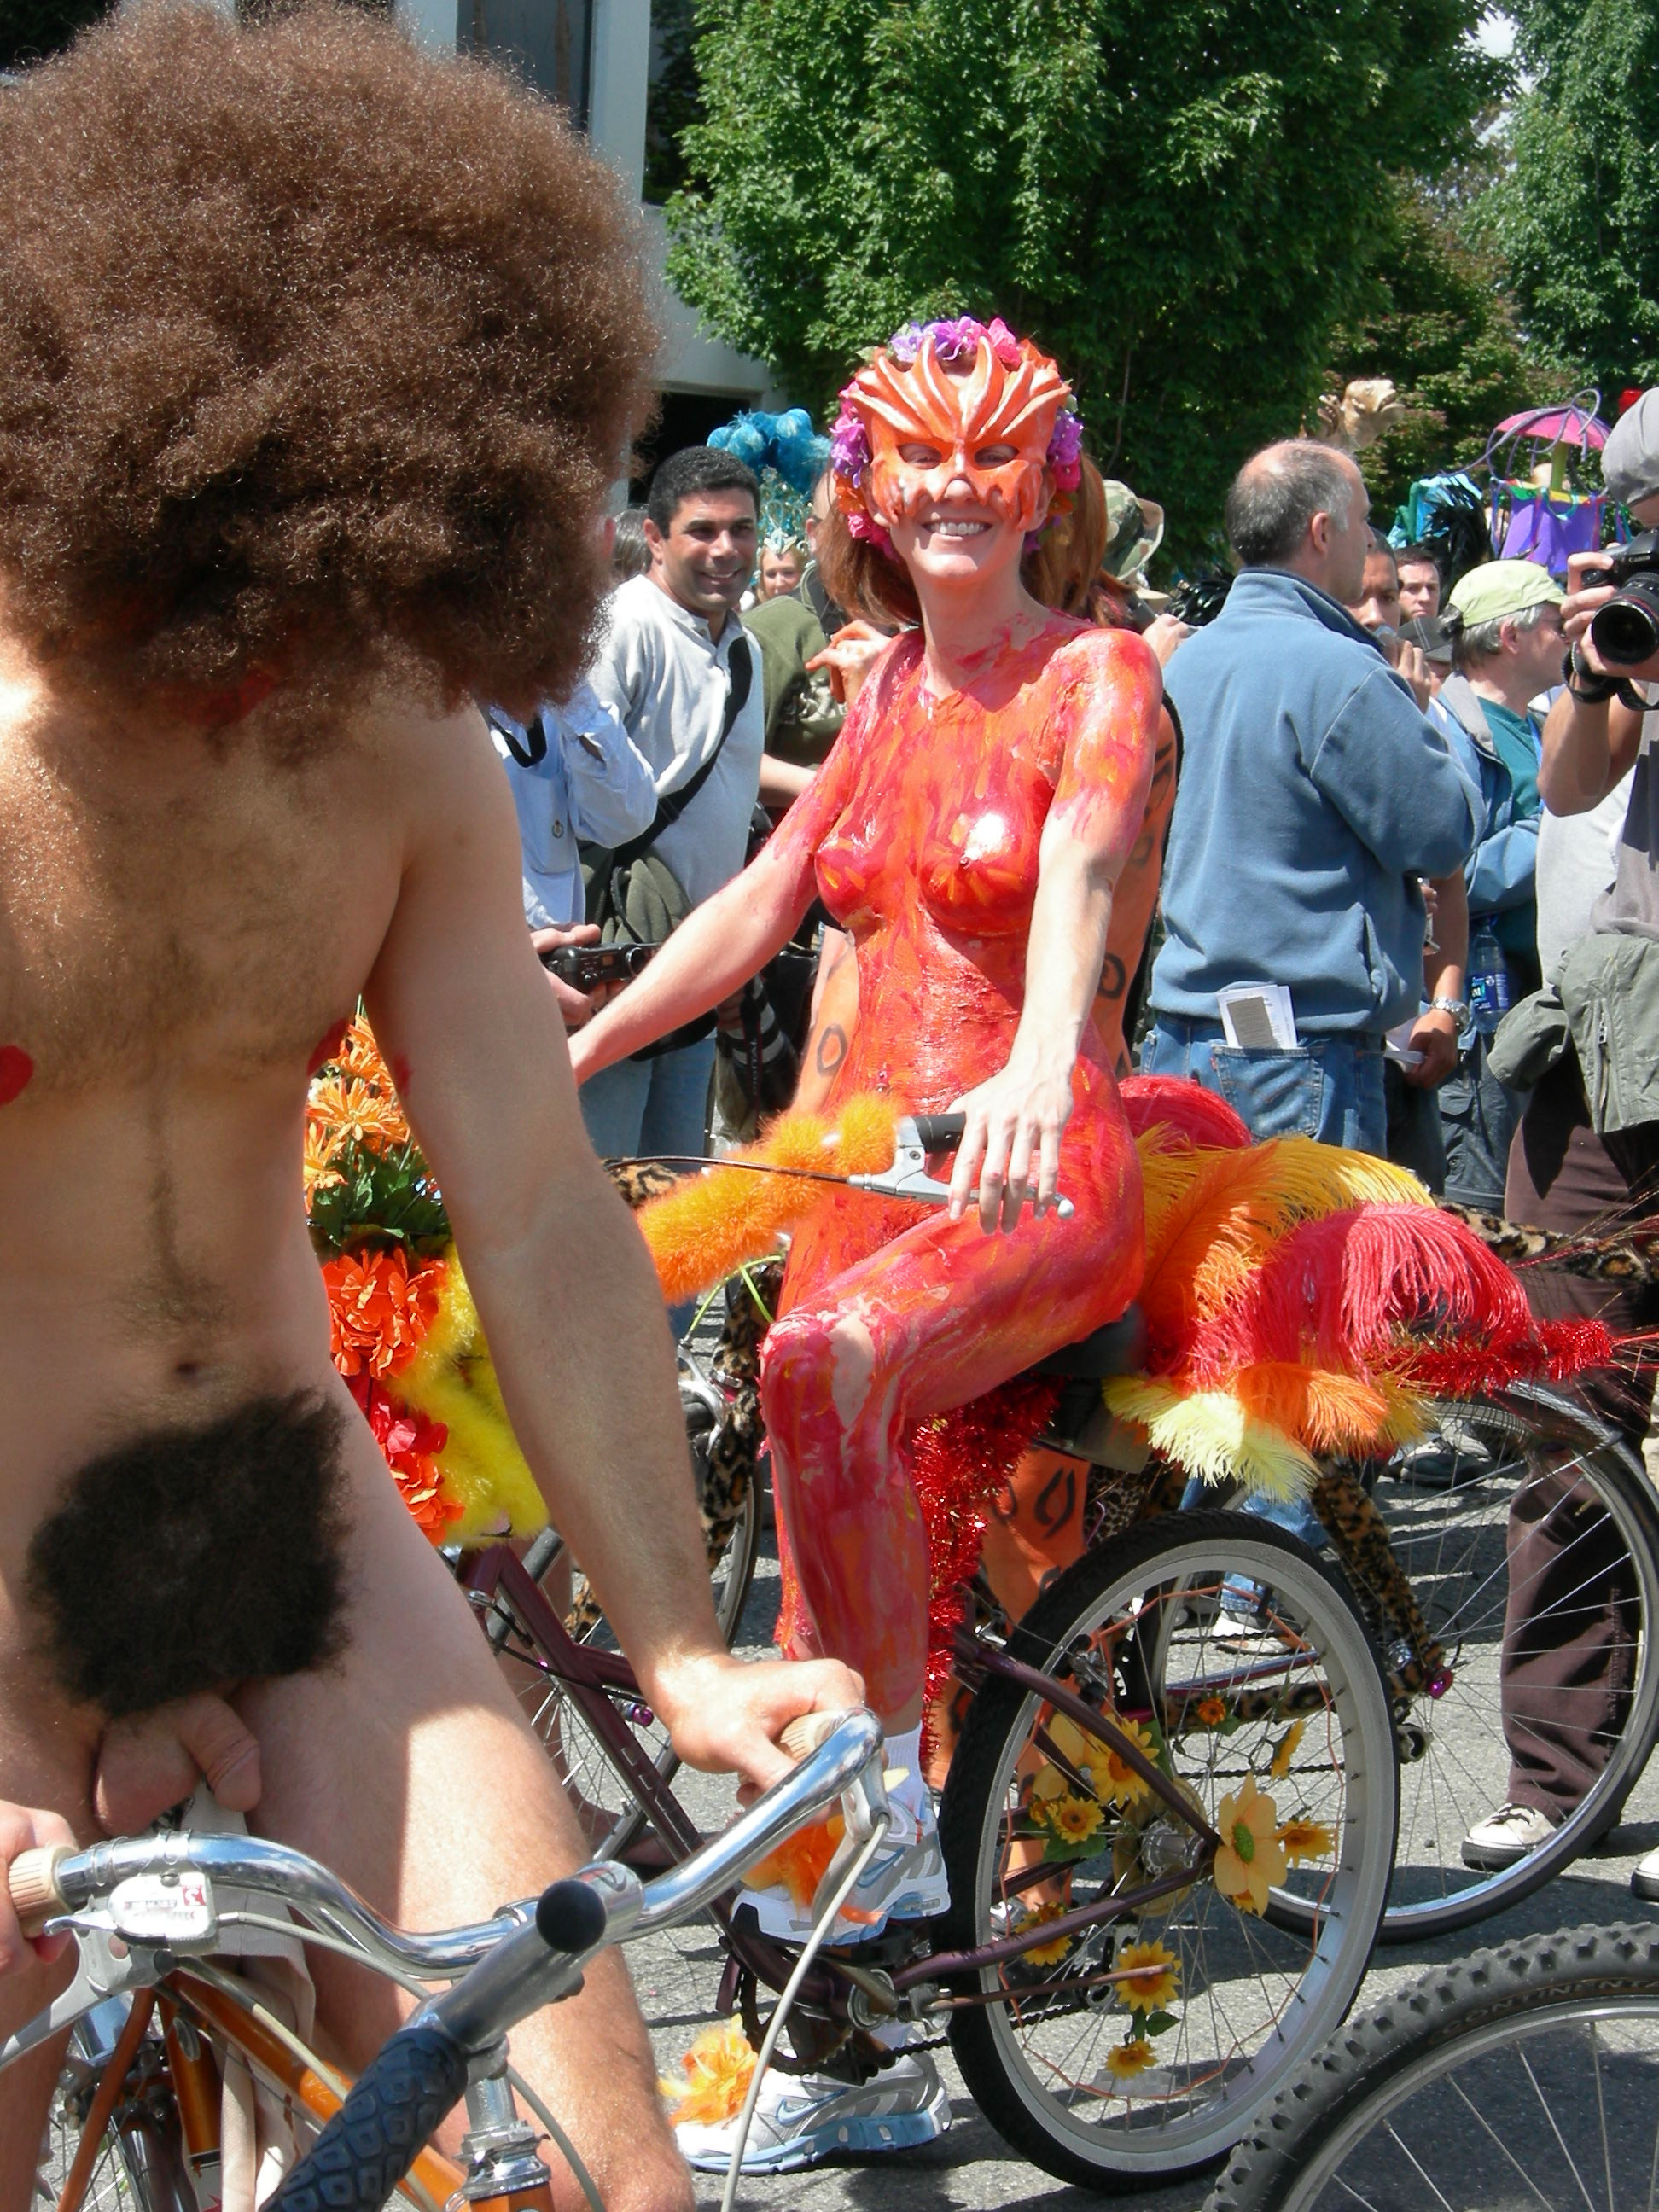 http://upload.wikimedia.org/wikipedia/commons/d/df/Fremont_Fair_2007_pre-parade_naked_cyclists_07.jpg